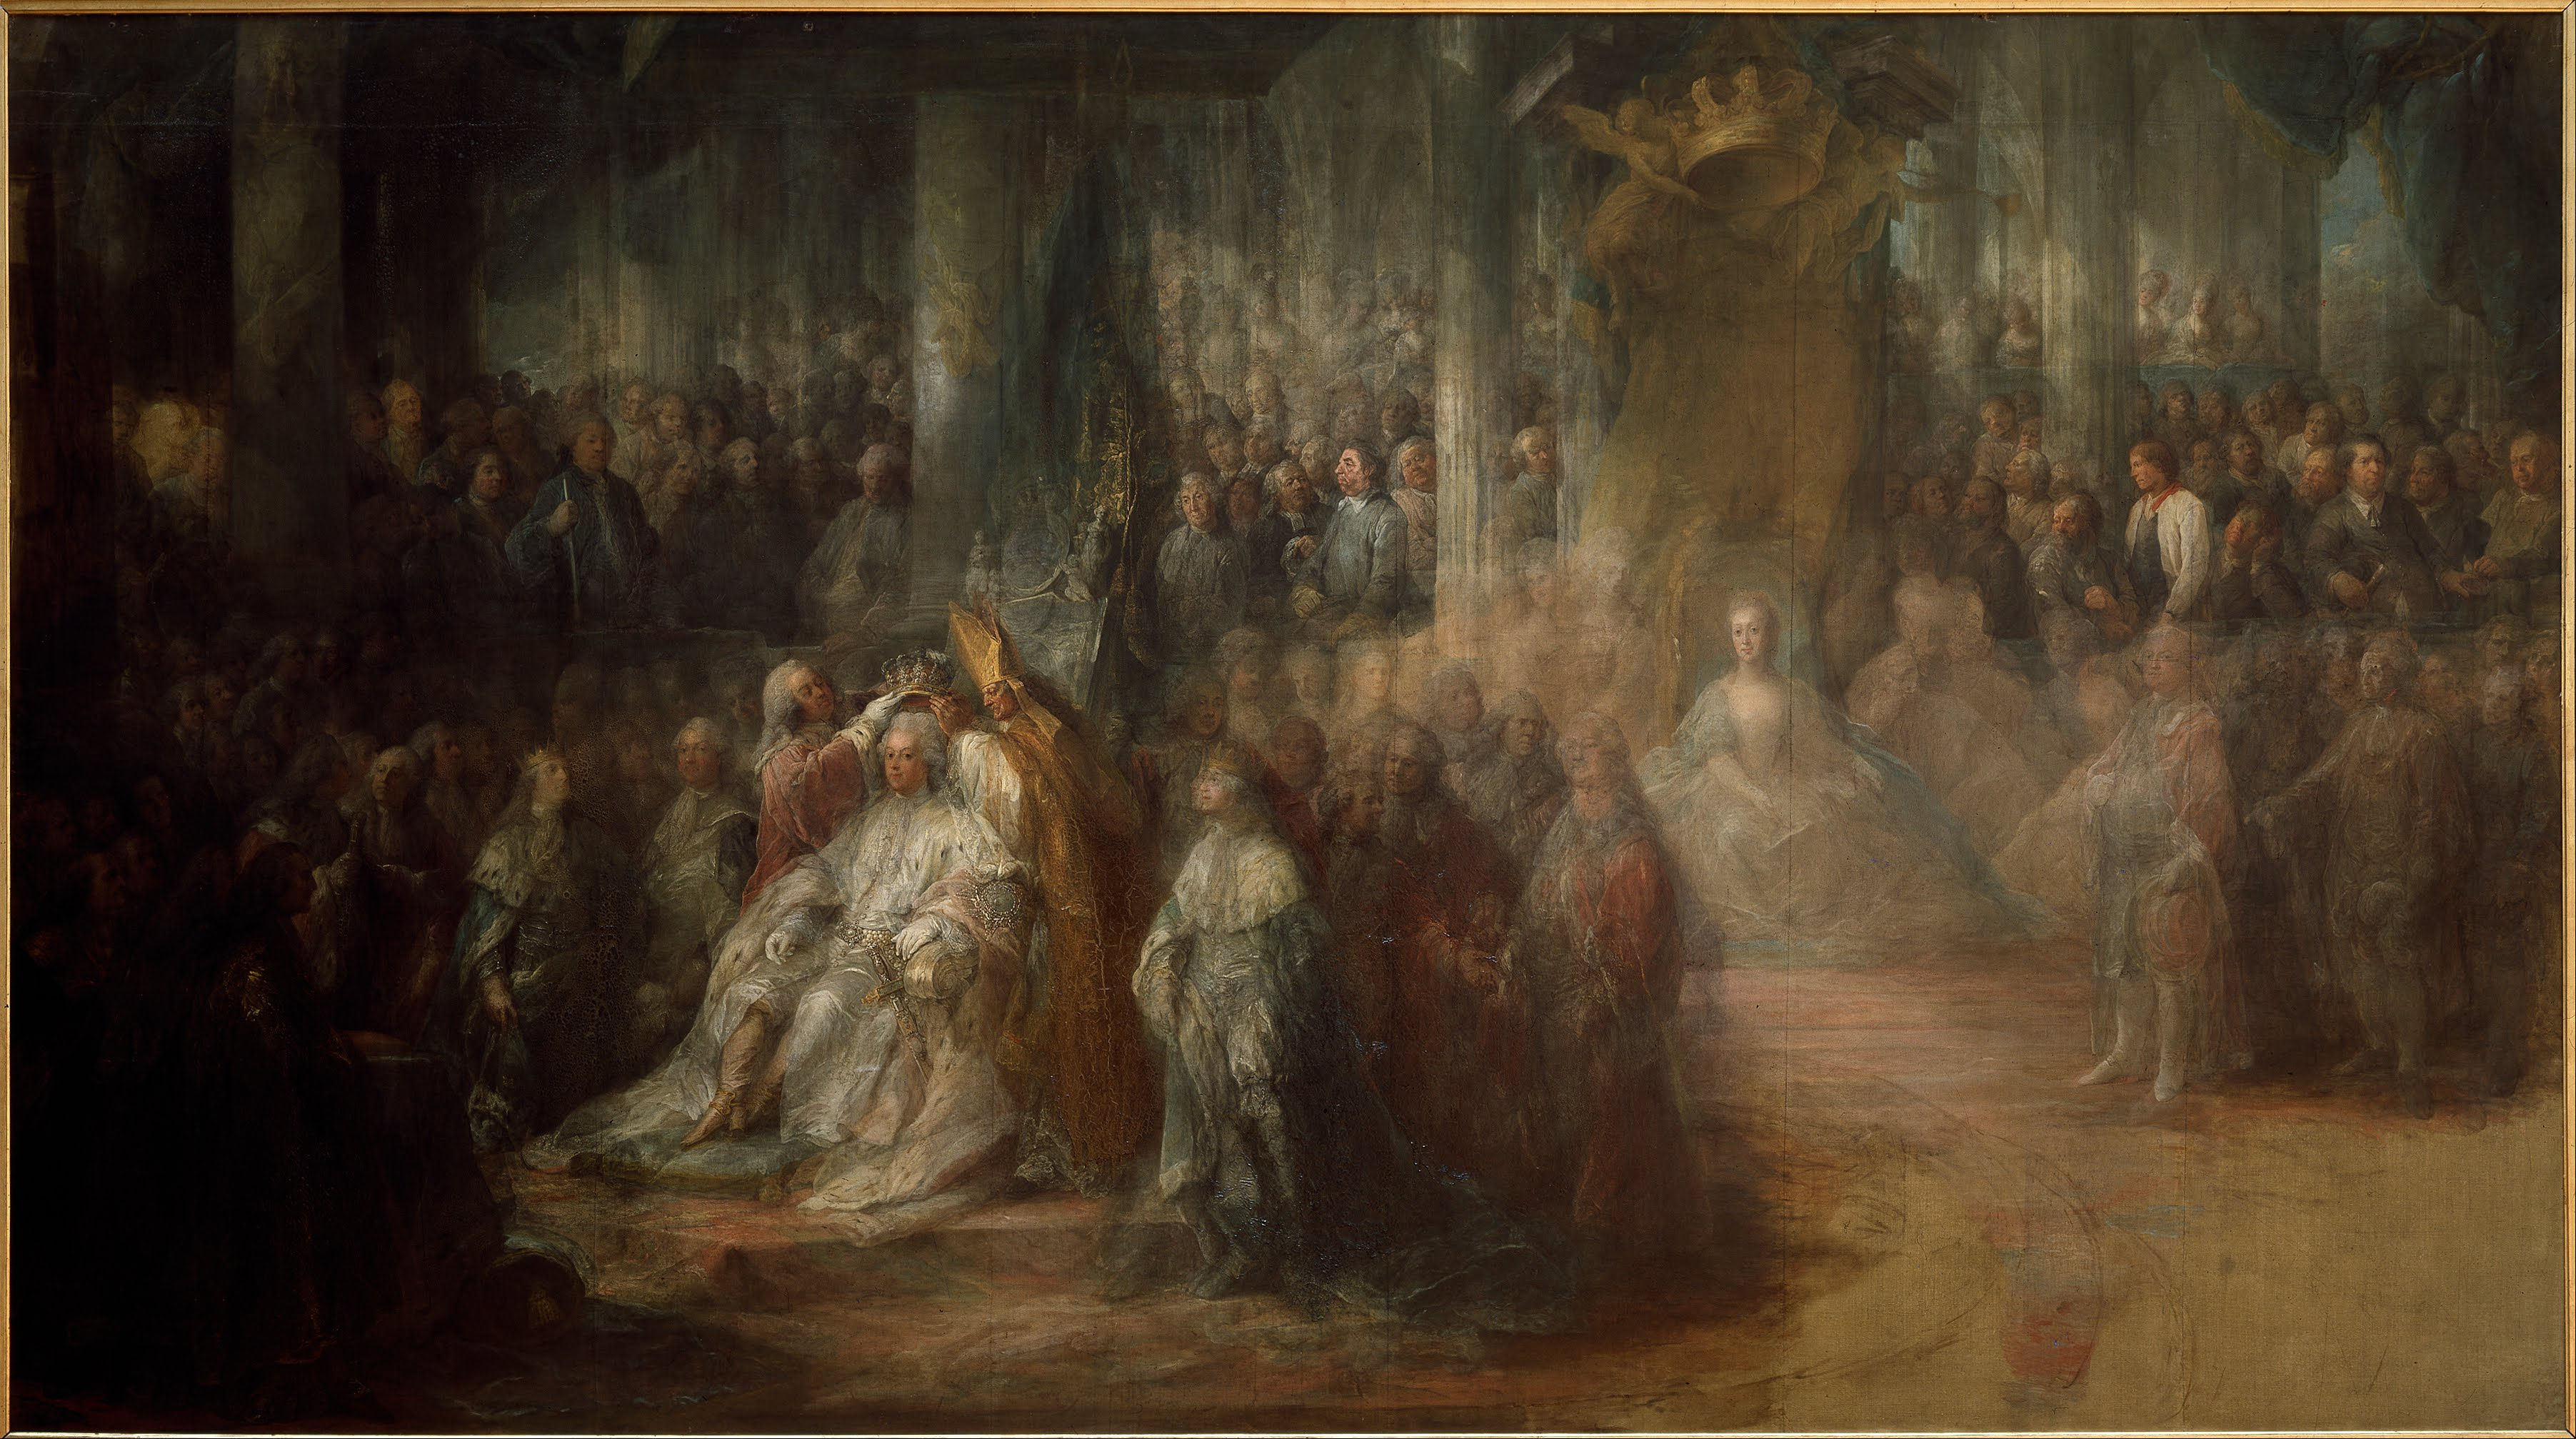 Carl_Gustav_Pilo_-_The_Coronation_of_King_Gustav_III_of_Sweden._Uncompleted_-_Google_Art_Project